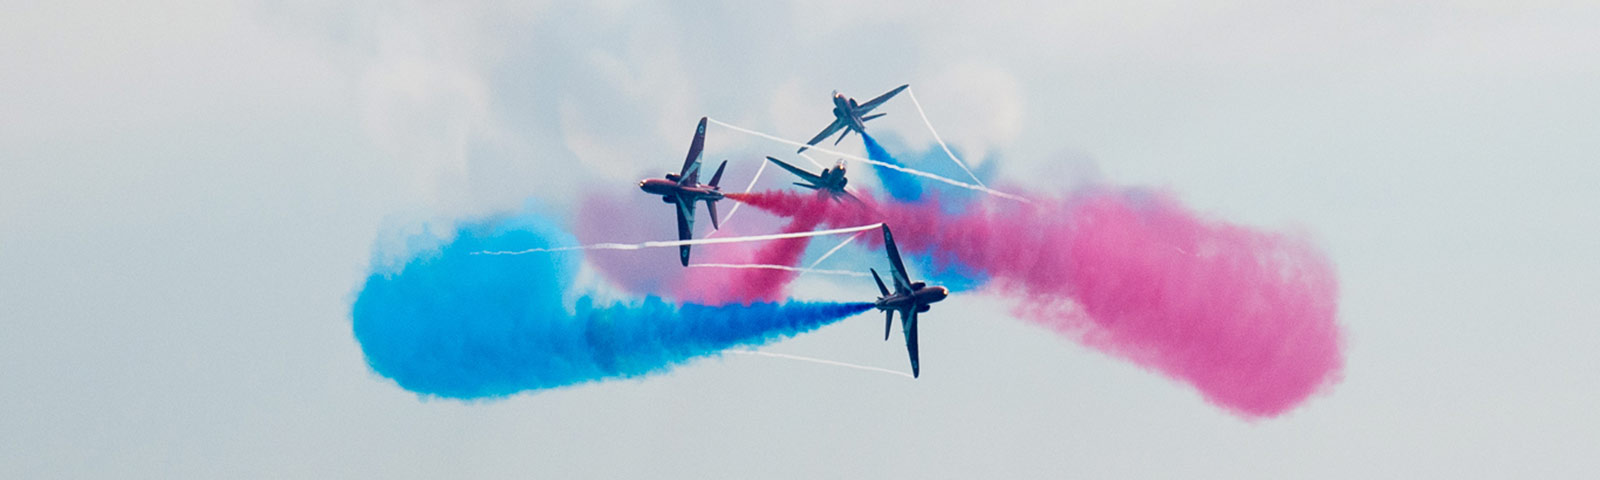 Fonix_LED_Screens_Case_Study_Bournemouth_Air_Show_1600x480